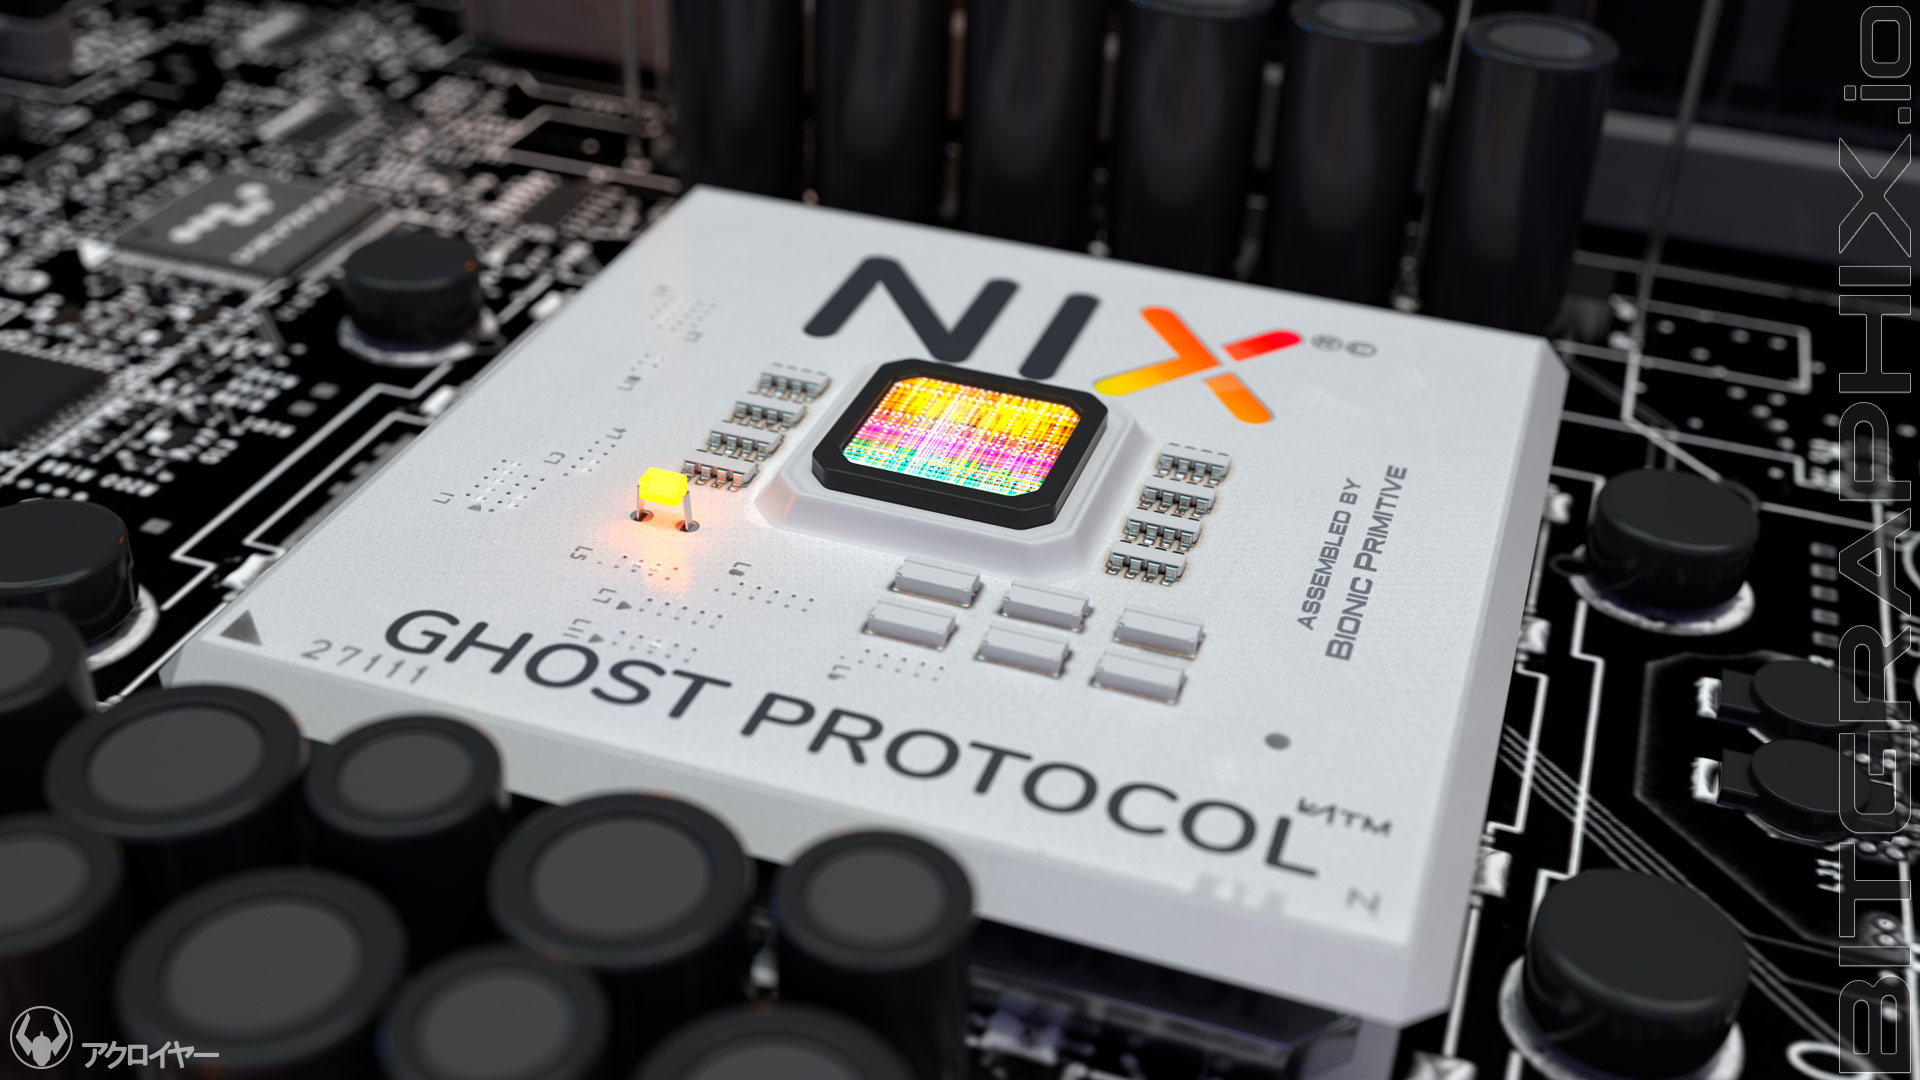 NIX-Platform-Ghost-Protocol-promotional-animation-still-frame-cpu-detail-3d-vfx-redshift-render